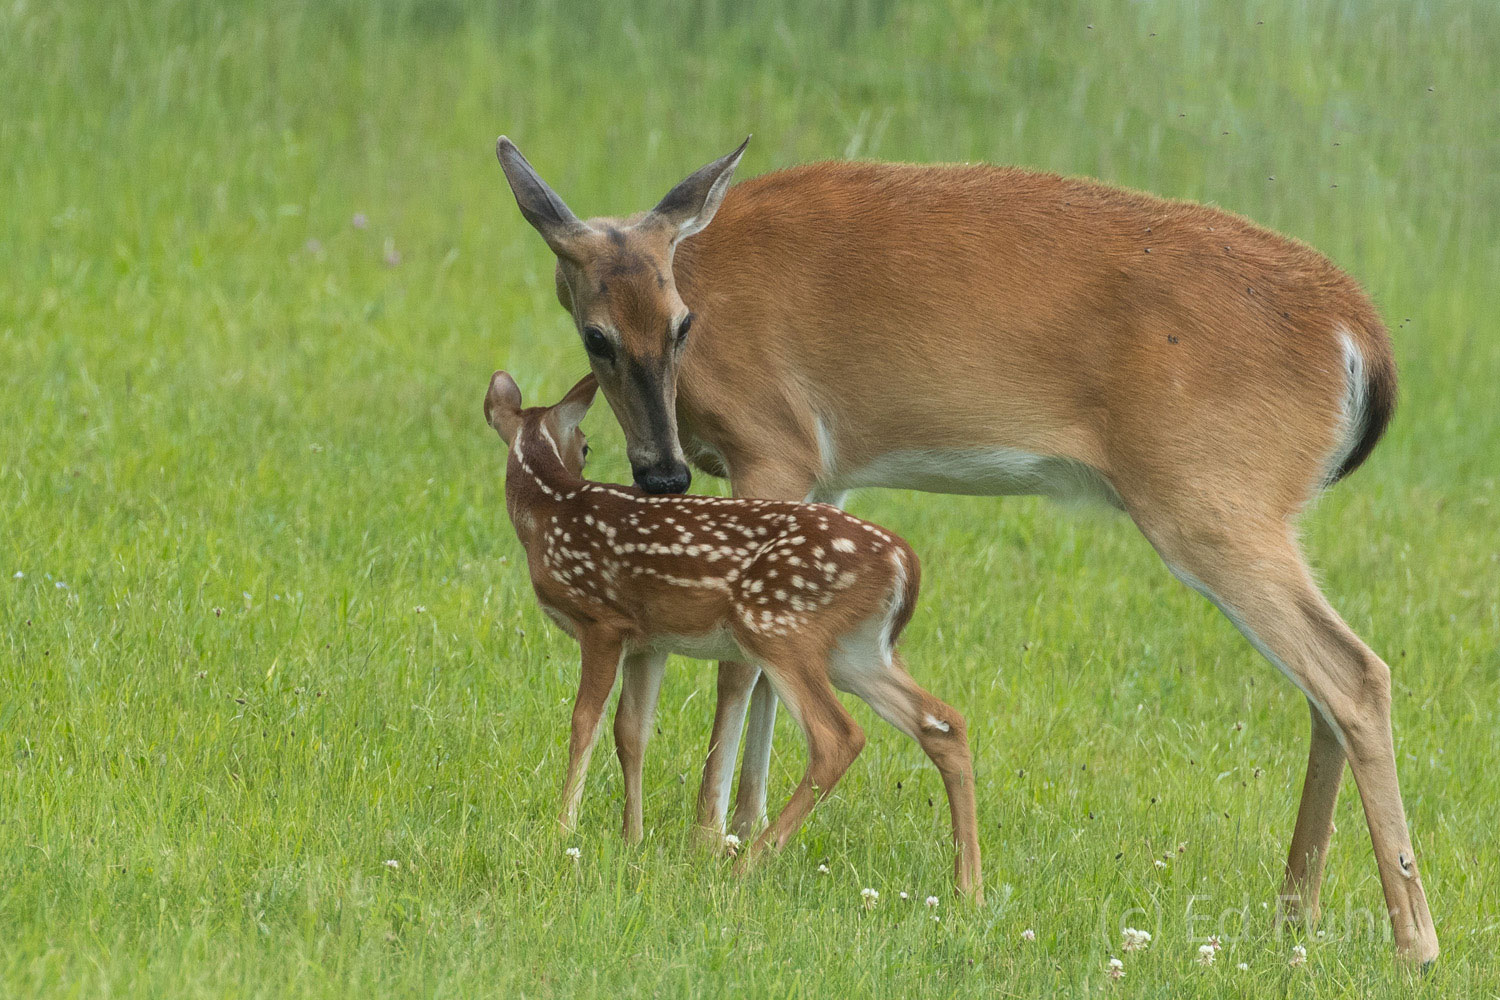 A does cleans her young fawn in Big Meadows, where deer frequently graze in the early hours of dawn.